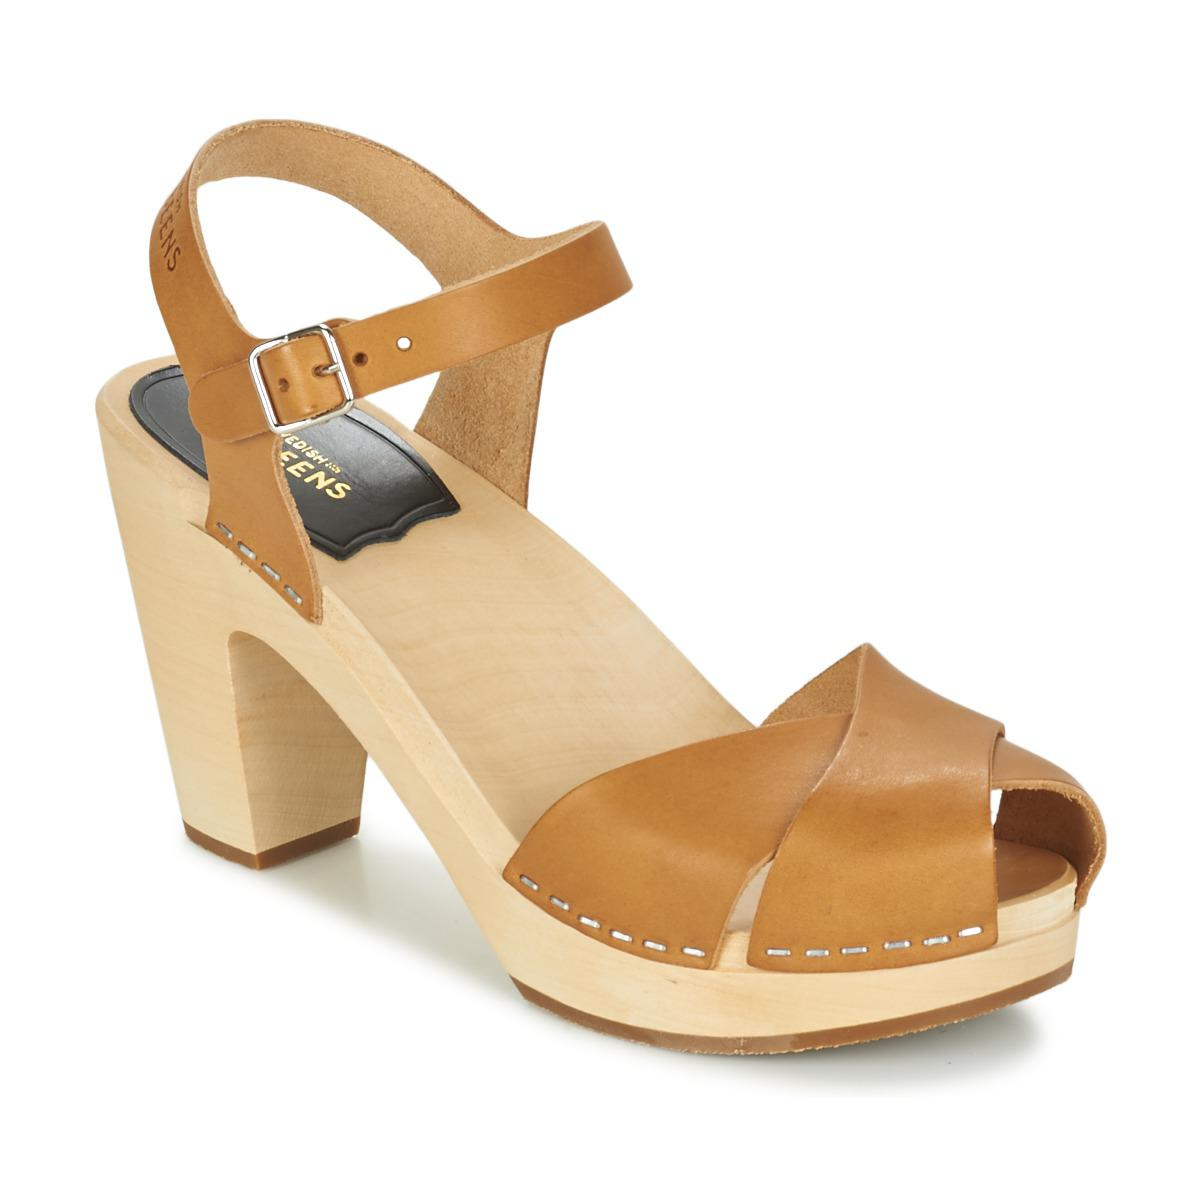 Clearance Wiki Finishline Swedish Hasbeens MERCI-SANDAL women's Sandals in ymoEHSRipY